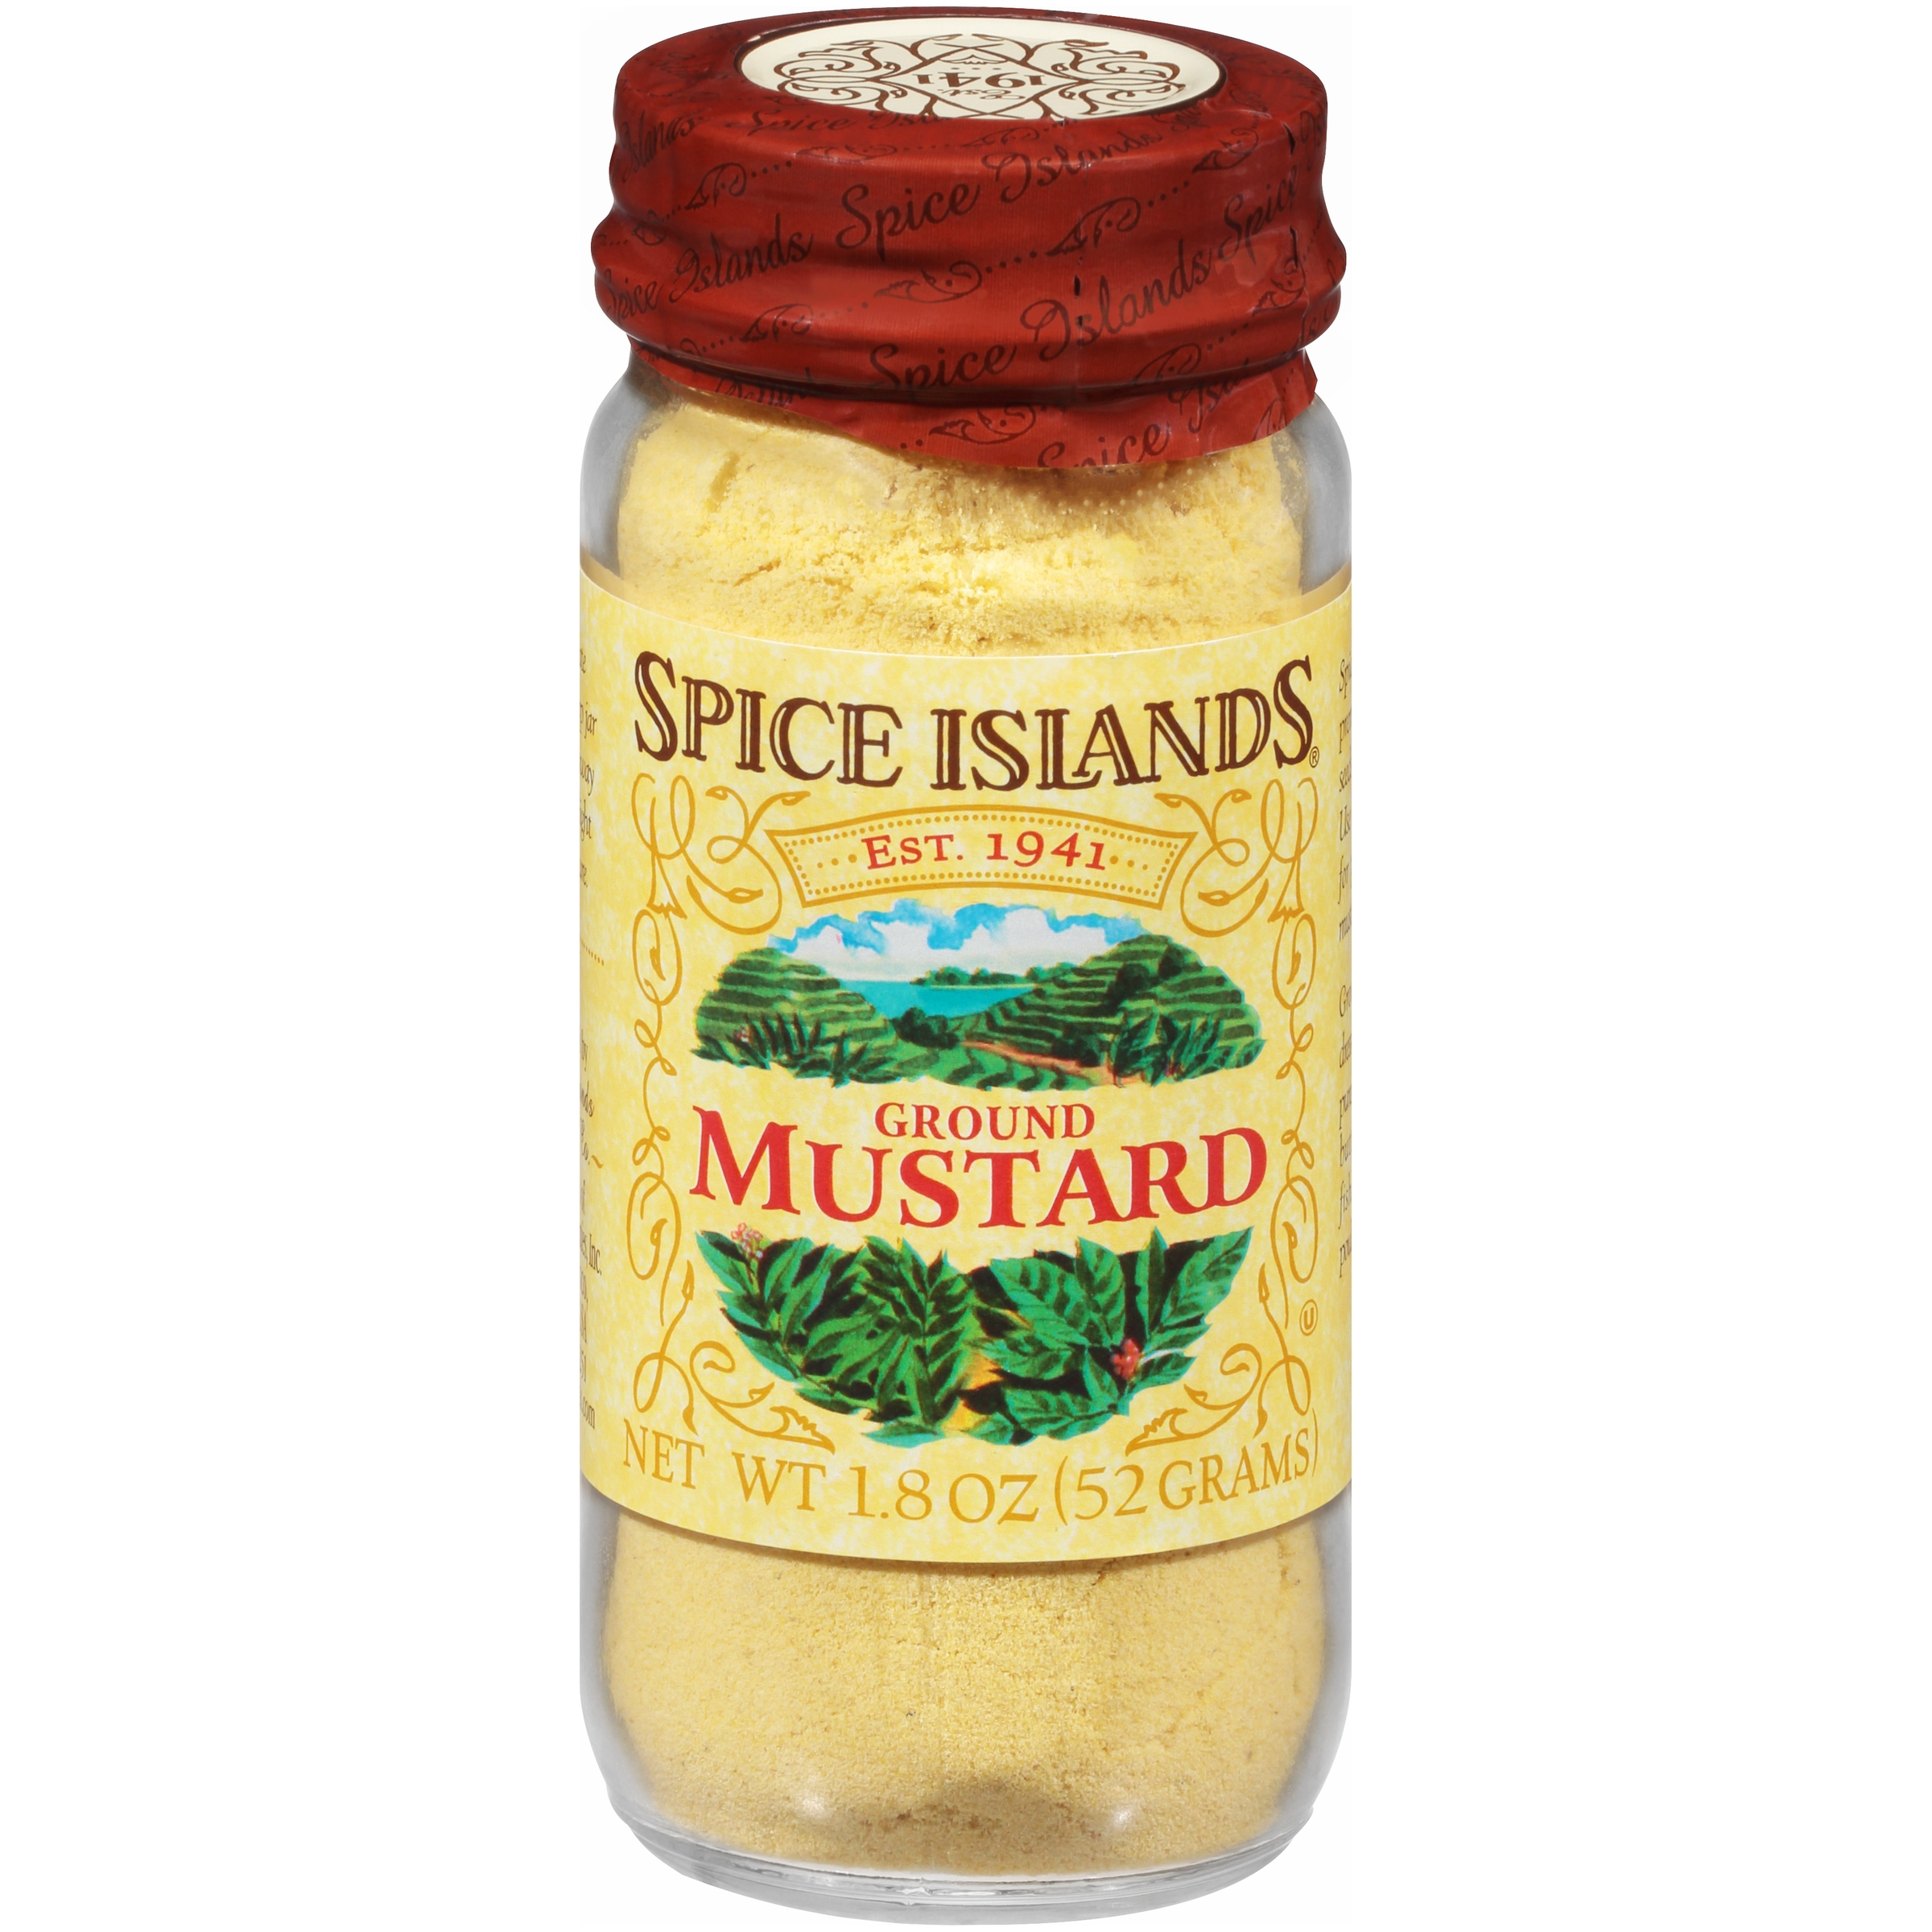 (2 Pack) Spice Islands® Ground Mustard 1.8 oz. Jar